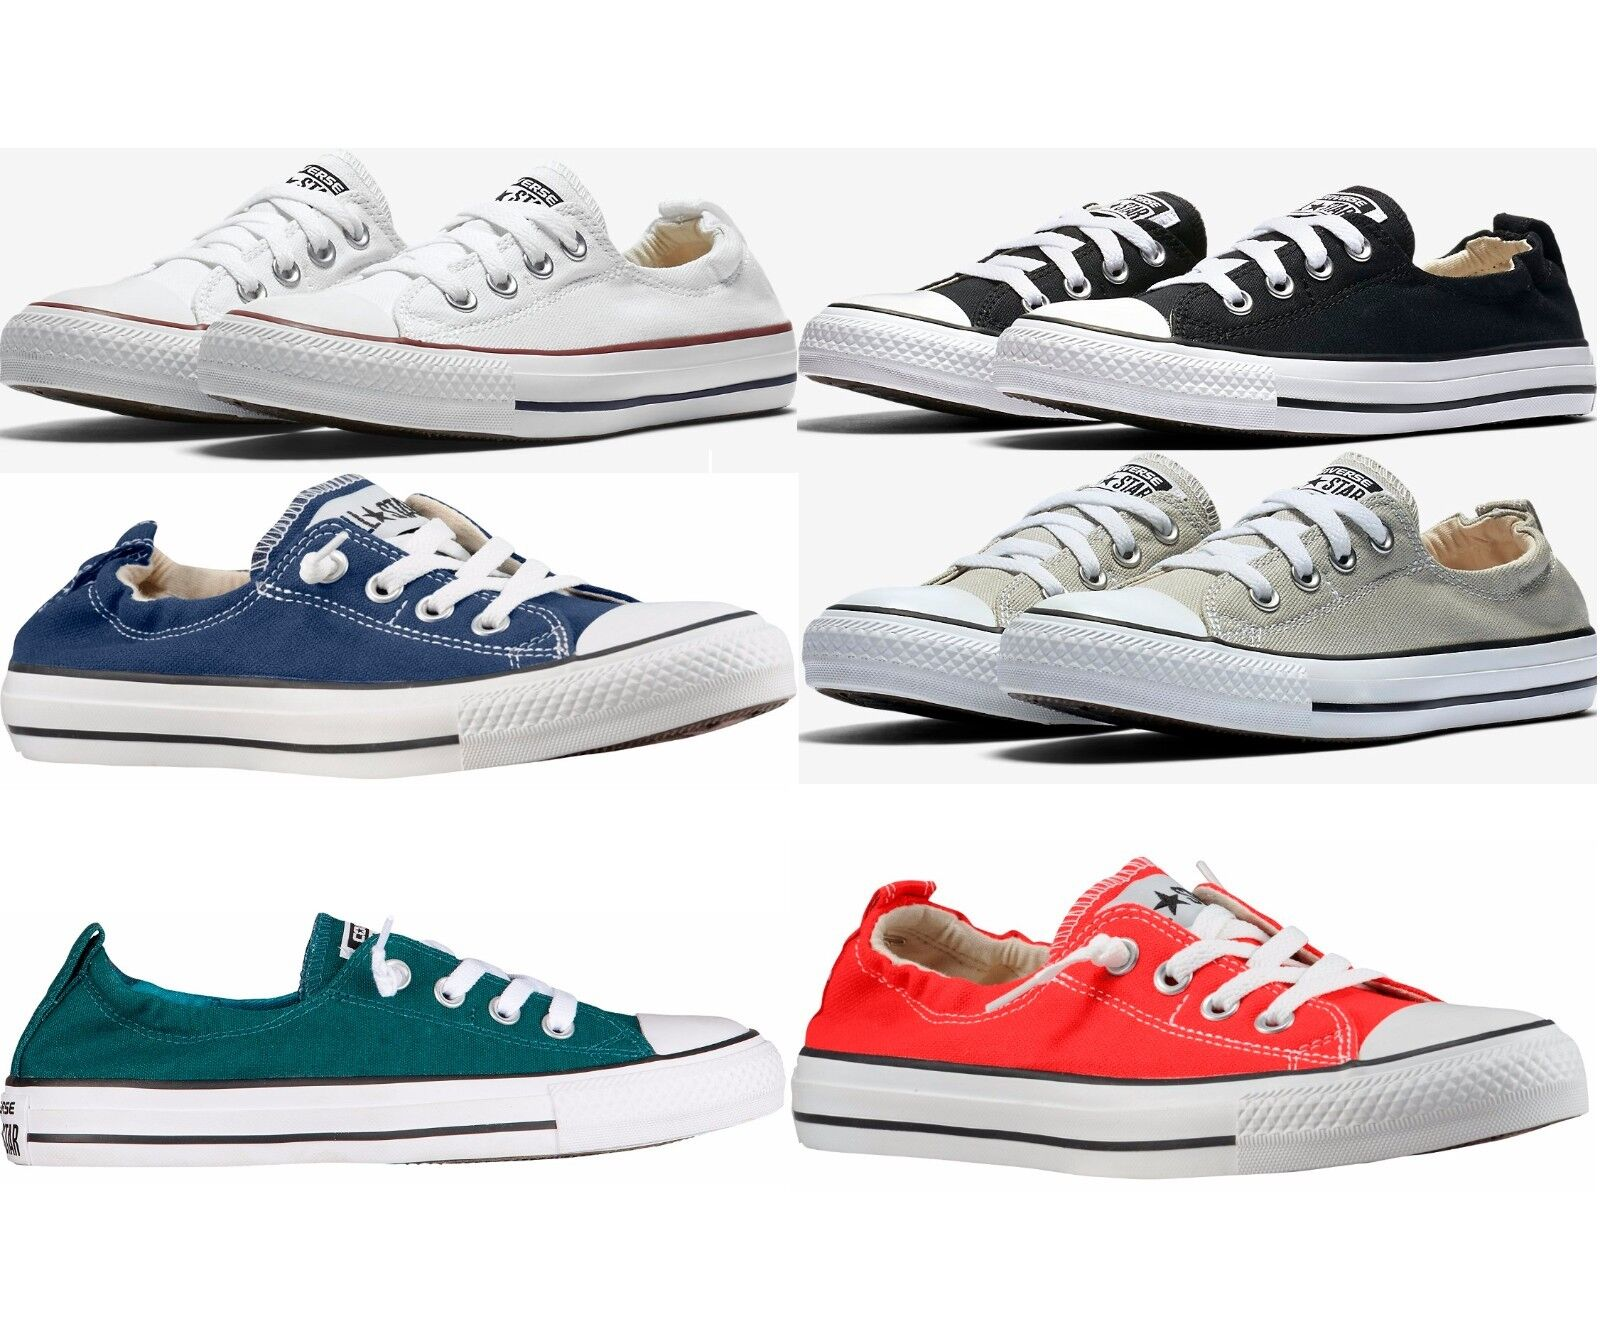 CONVERSE CHUCK TAYLOR ALL STAR SHORELINE SLIP WOMEN'S SLIP-ON COMFY SNEAKERS